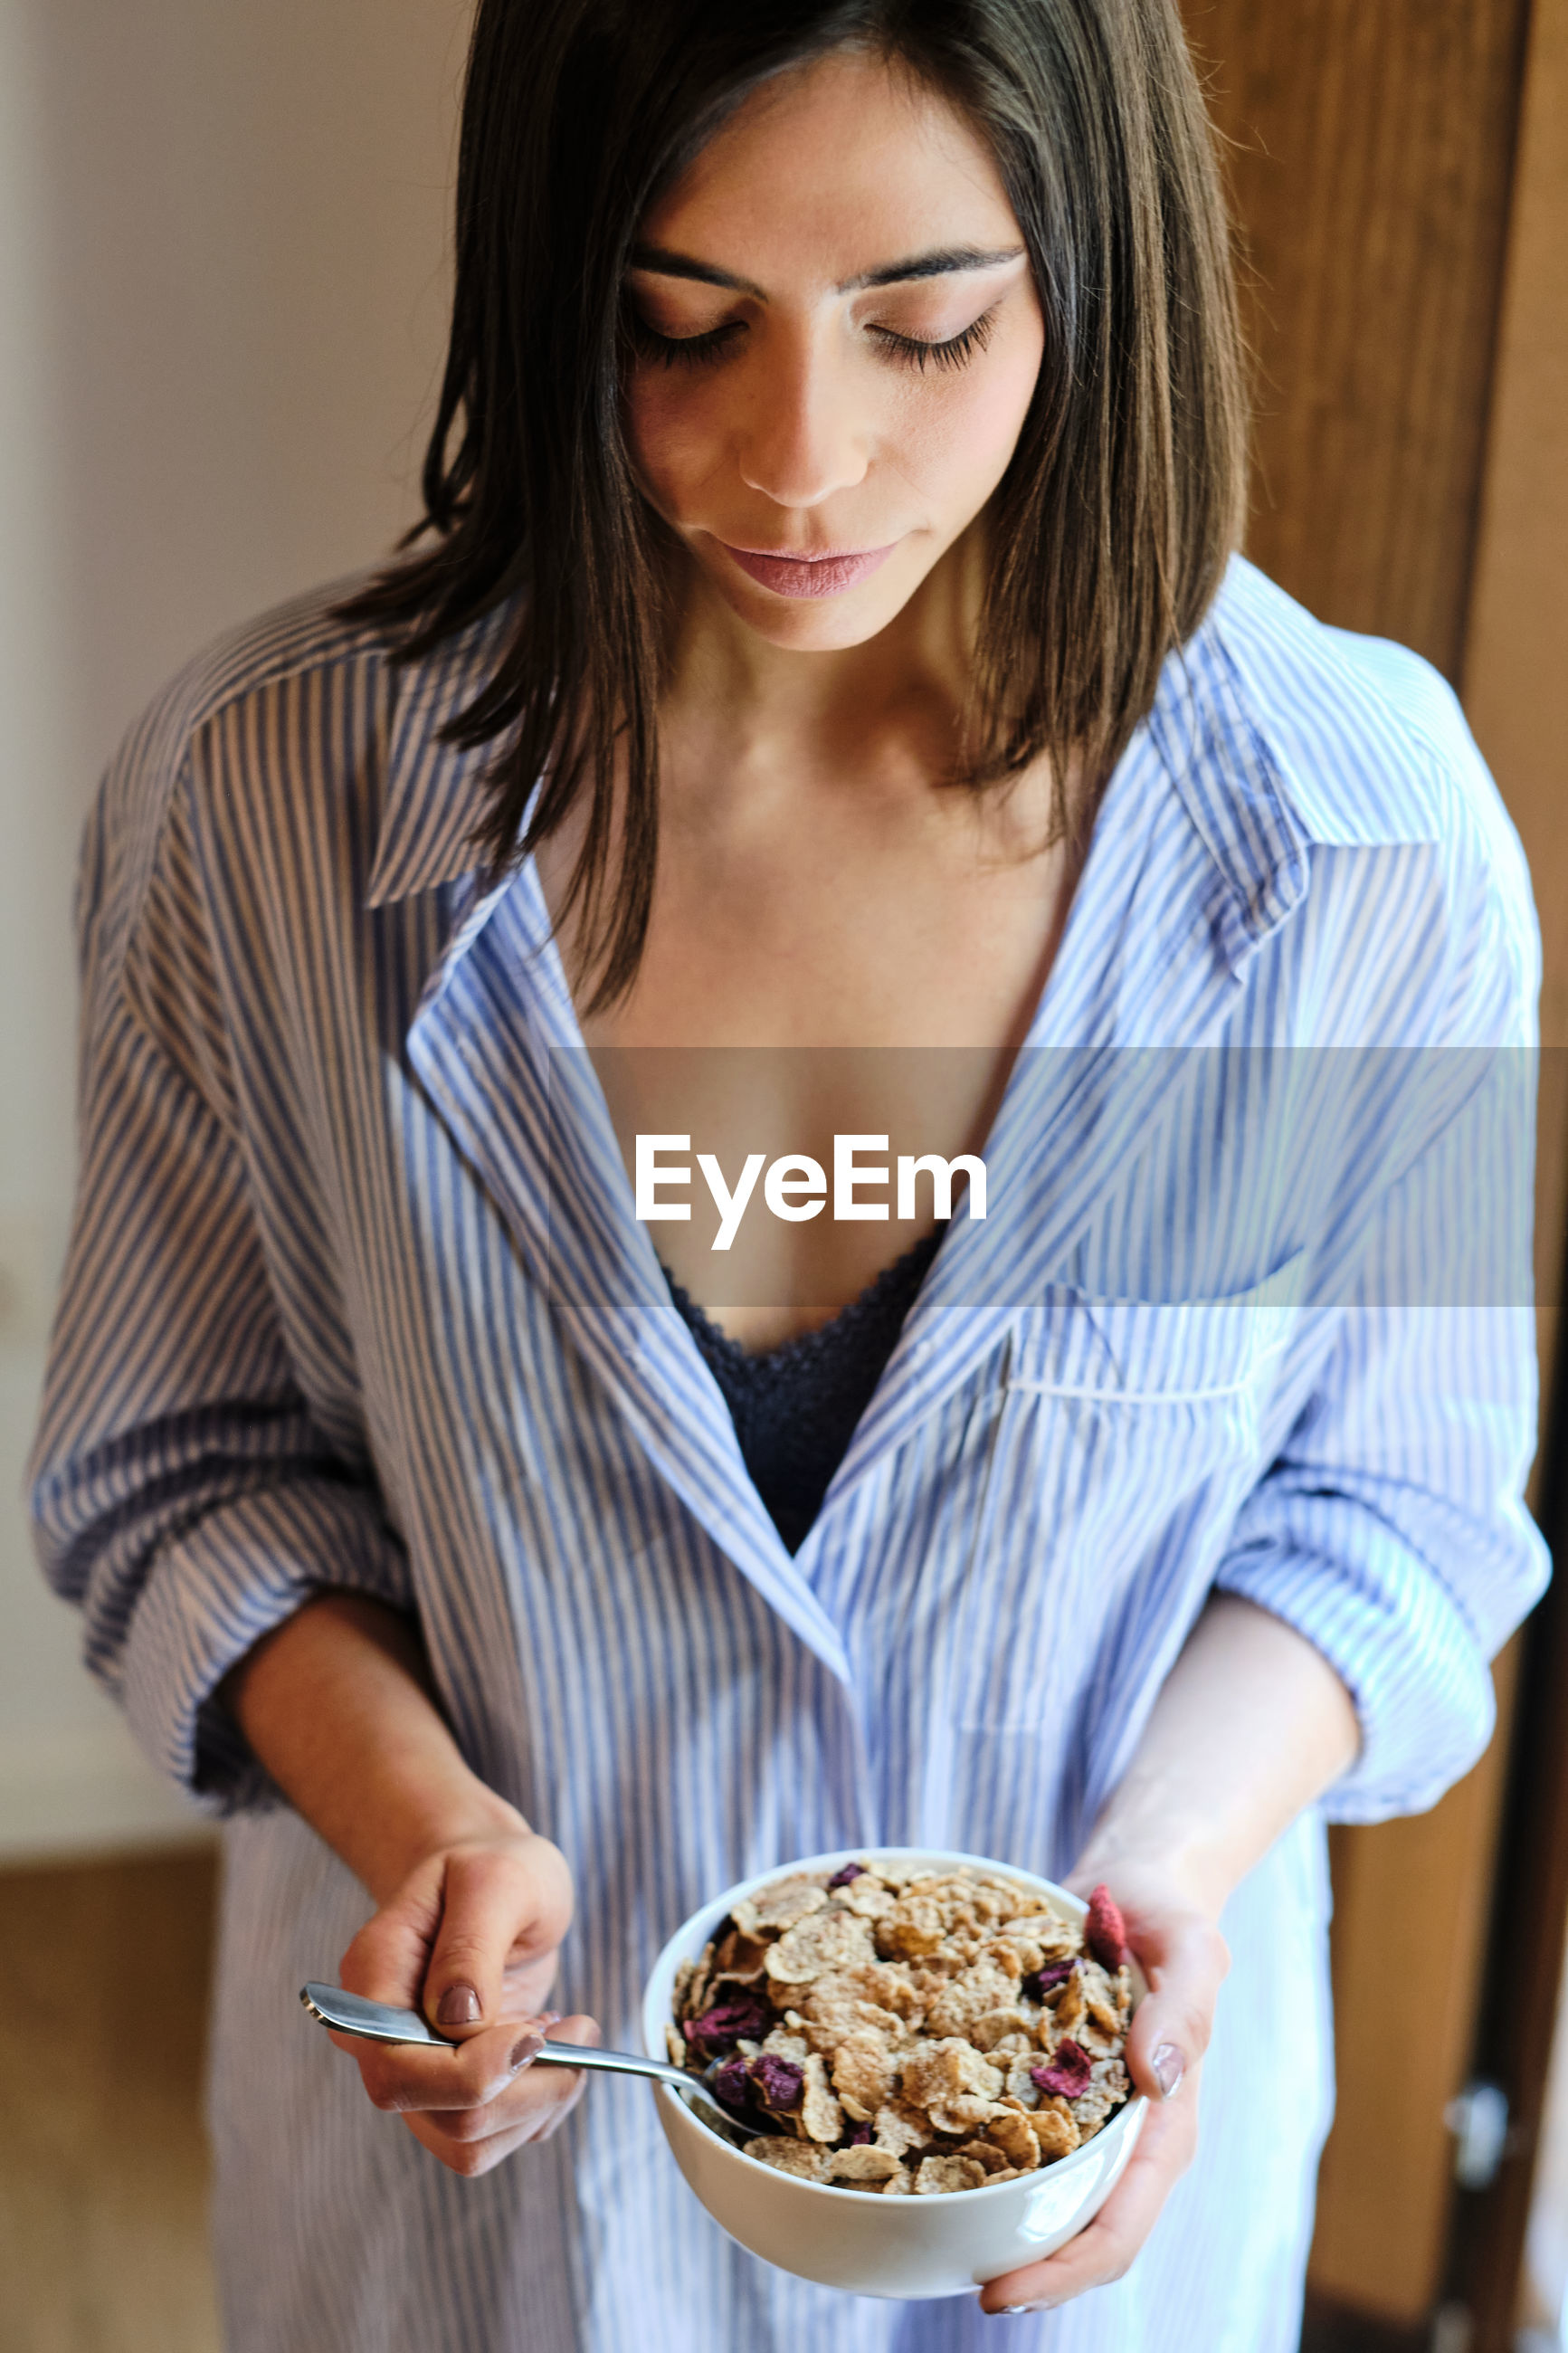 MIDSECTION OF A WOMAN HOLDING ICE CREAM IN PLATE